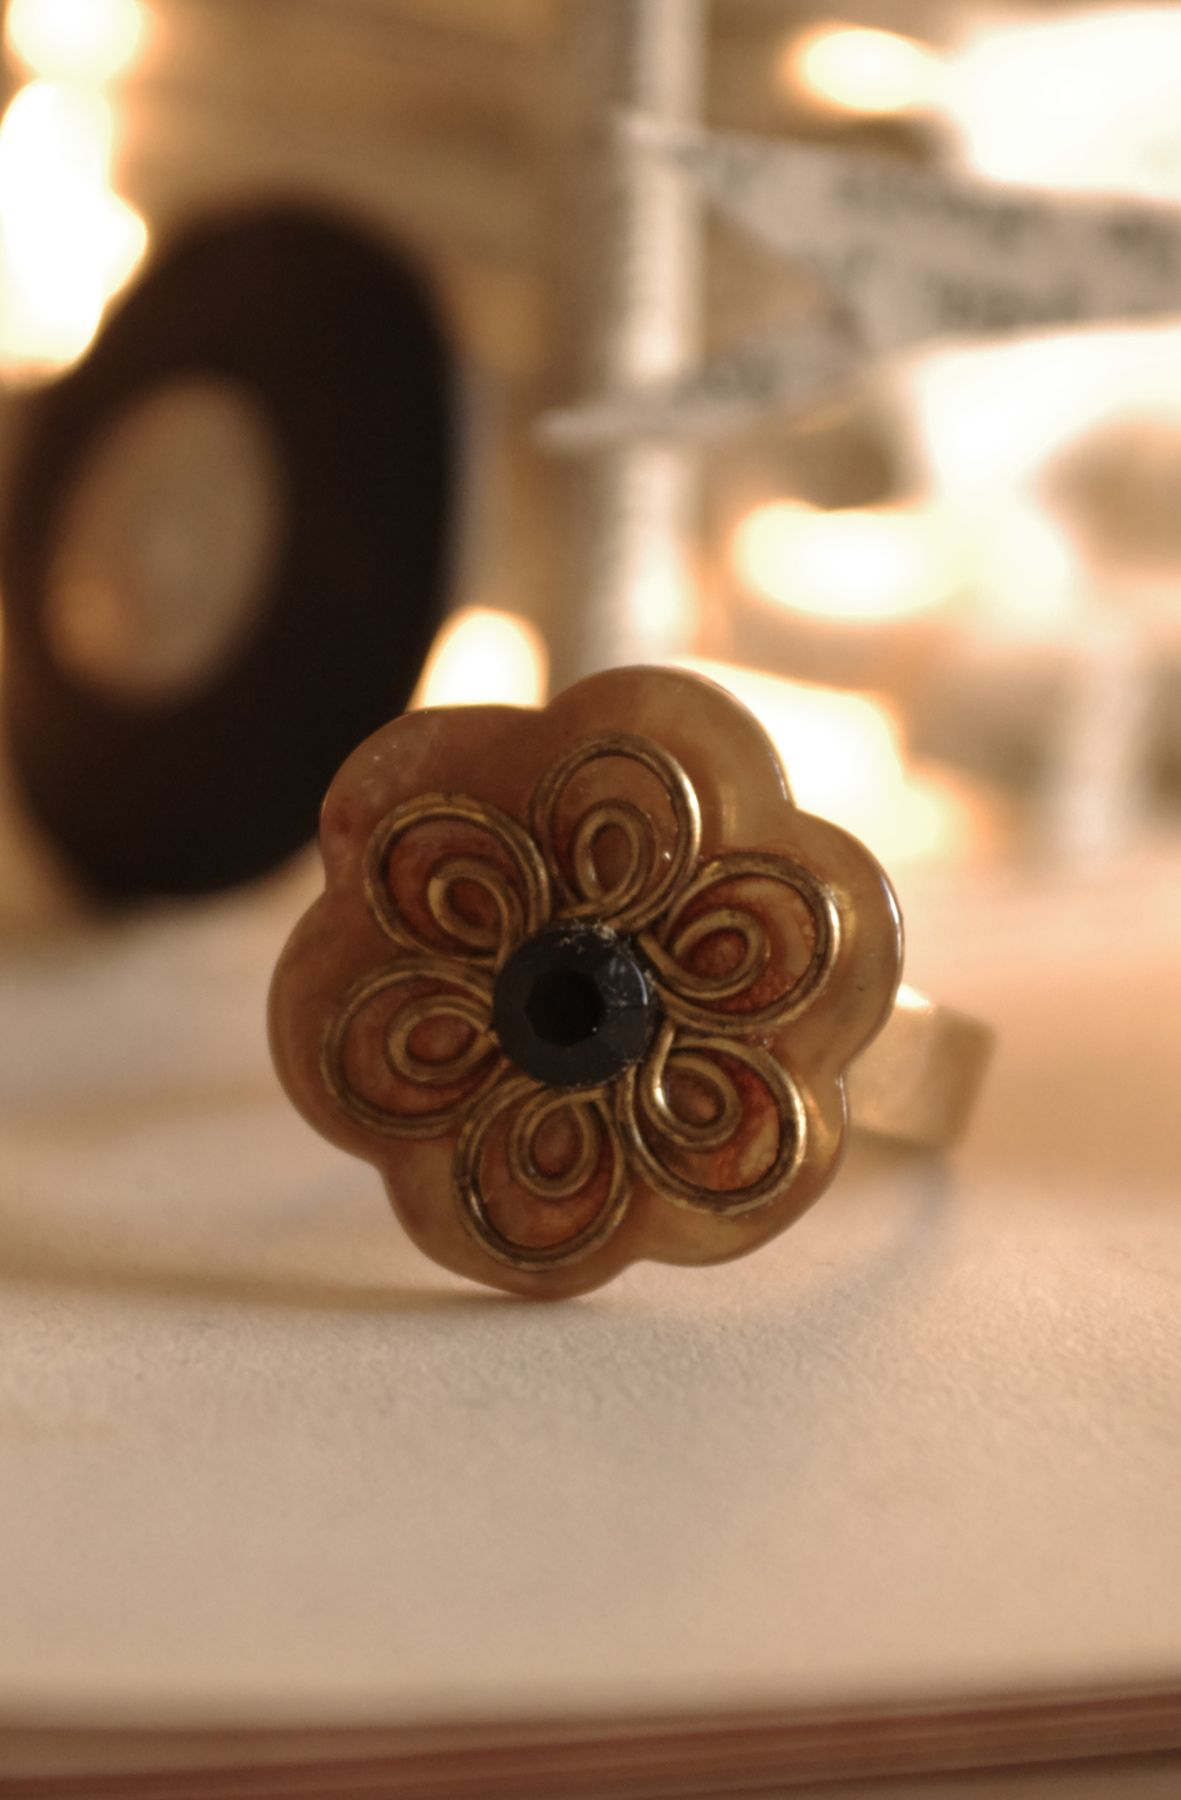 DIY jewlery ring made with buttons www.camilleaudouard.com